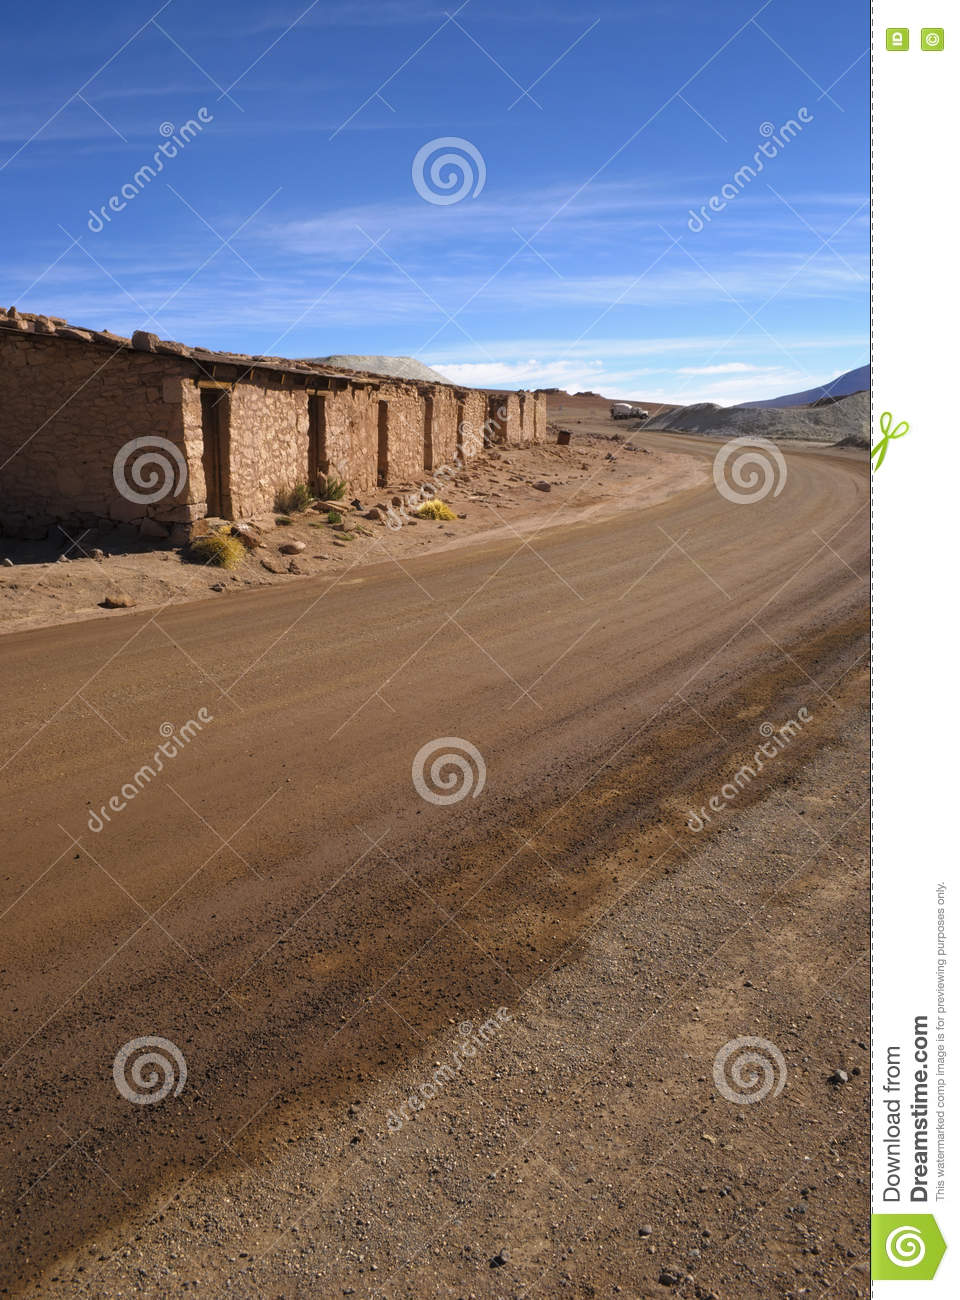 A road worker s house in the middle of the desert